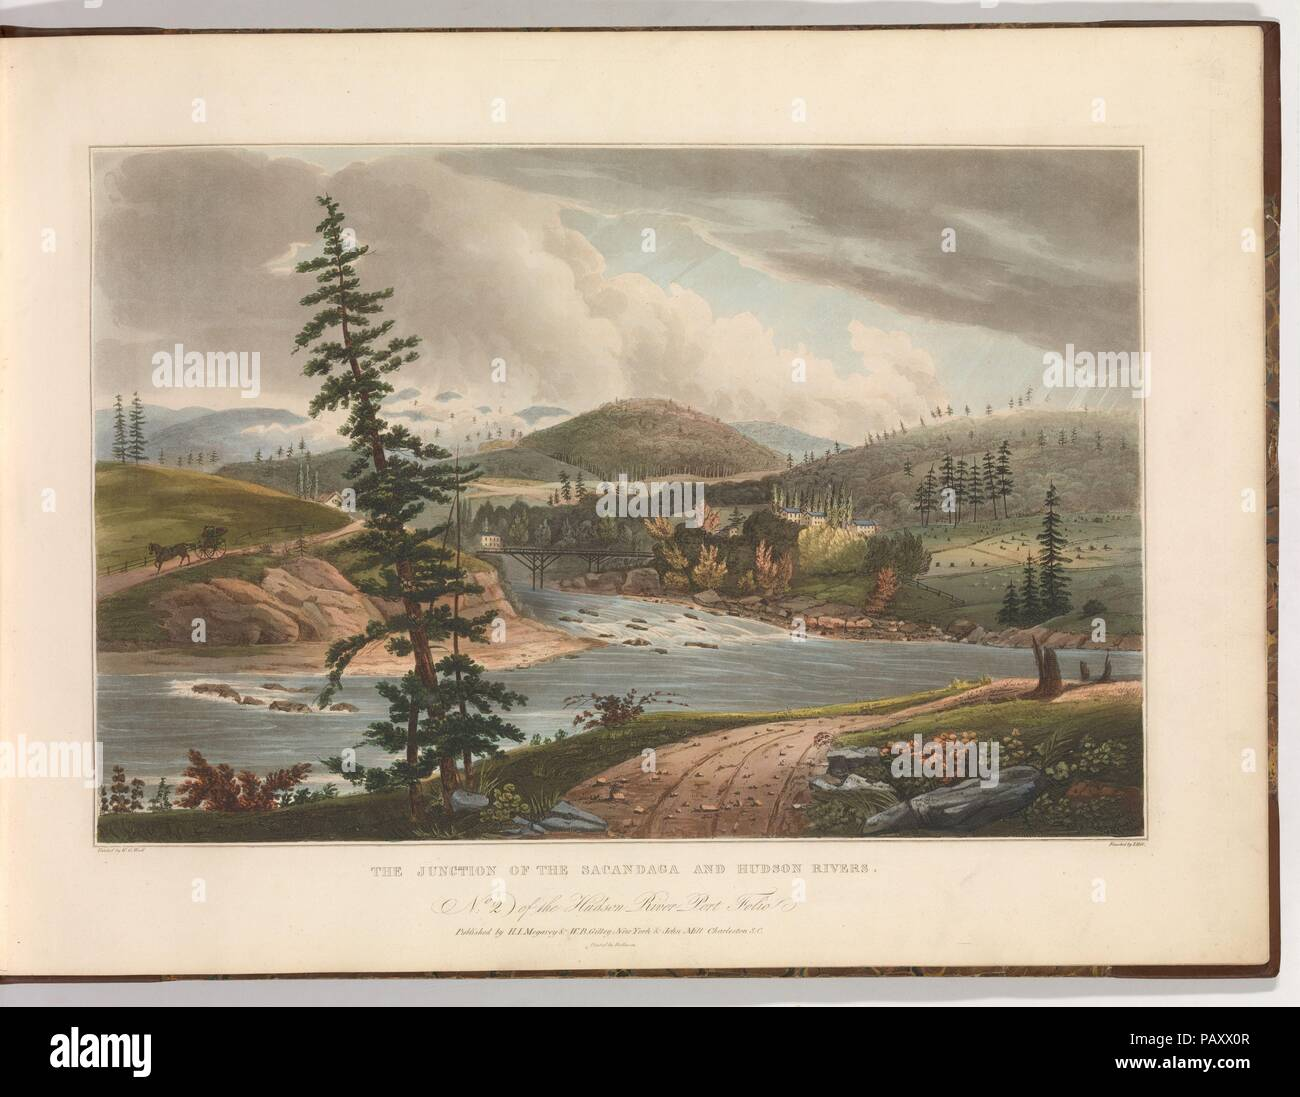 Junction of the Sacandaga and Hudson Rivers (No. 2 of The Hudson River Portfolio). Artist: after William Guy Wall (Irish, Dublin 1792-after 1864 Ireland (active America)). Dimensions: Image: 14 1/16 x 20 3/16 in. (35.7 x 51.3 cm)  Sheet: 19 x 24 1/2 in. (48.3 x 62.2 cm). Etcher: John Hill (American (born England), London 1770-1850 Clarksville, New York). Printer: William and Charles Rollinson (American, active ca. 1808-33). Publisher: Henry J. Megarey (American, 1818-1845 New York); W. B. Gilley (New York, NY); John Mill (Charleston, South Carolina). Series/Portfolio: The Hudson River Portfoli - Stock Image